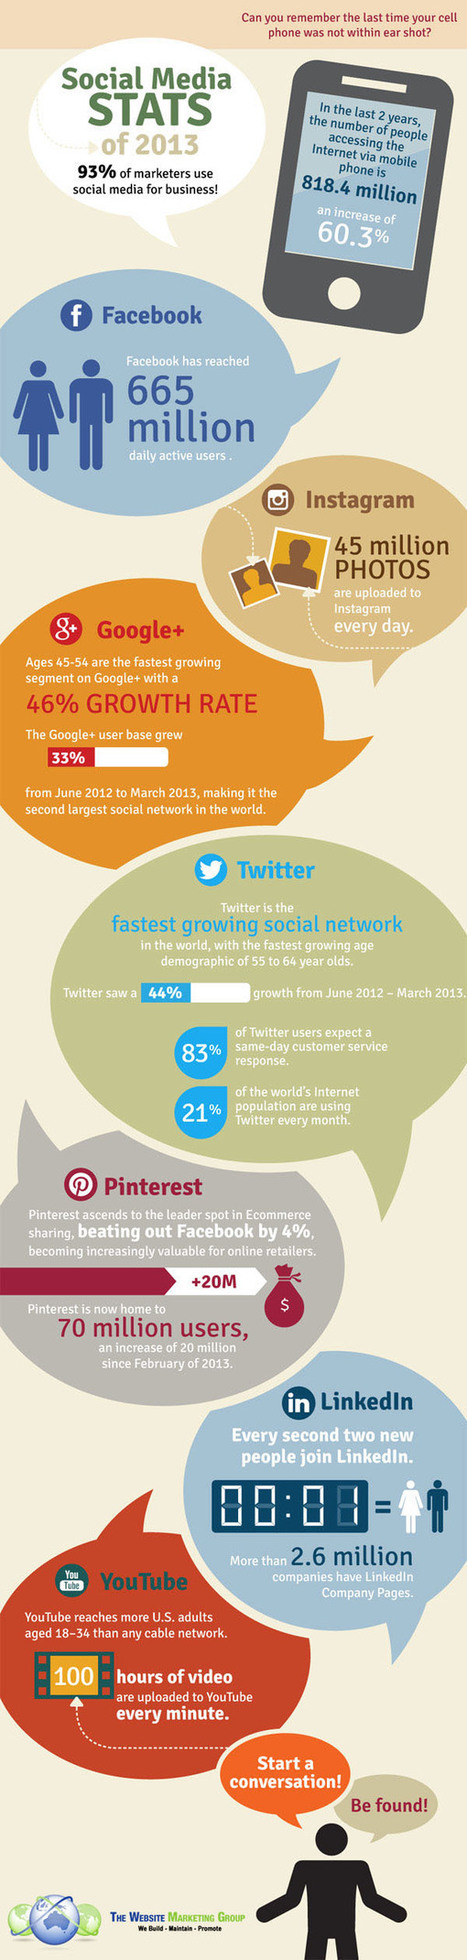 Social Media Infographic 2013 : Which platform is growing the fastest? | Social Media sites | Scoop.it